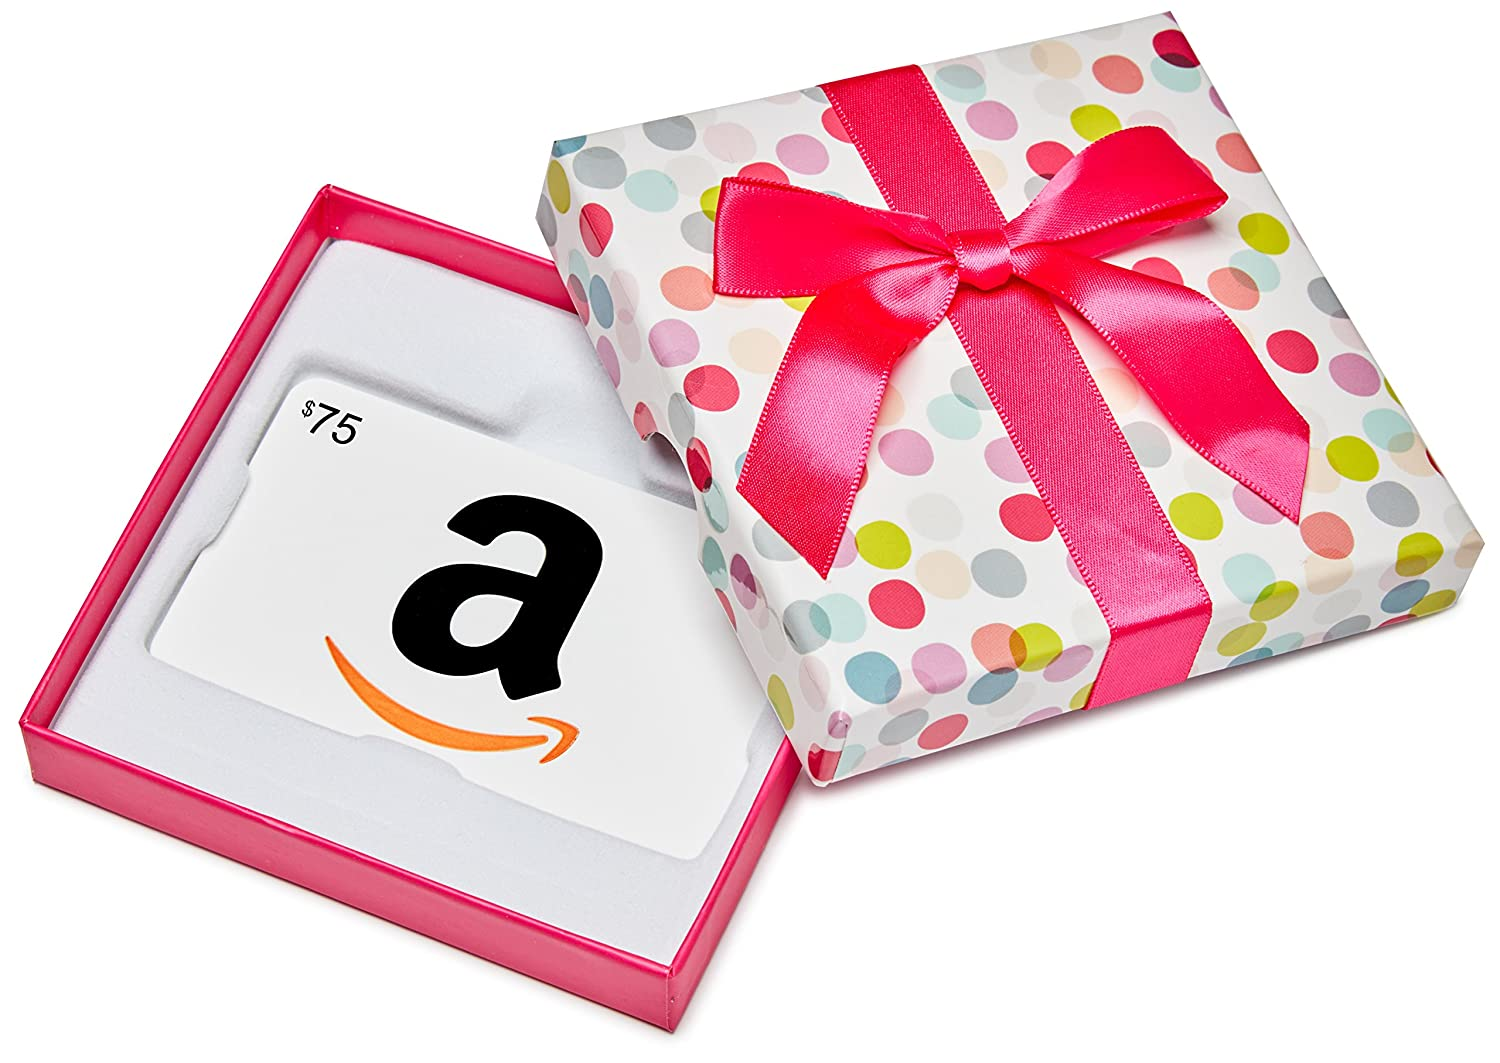 Amazon.ca Gift Card in a Polka Dot Box (Classic White Card Design) Amazon.com.ca Inc.